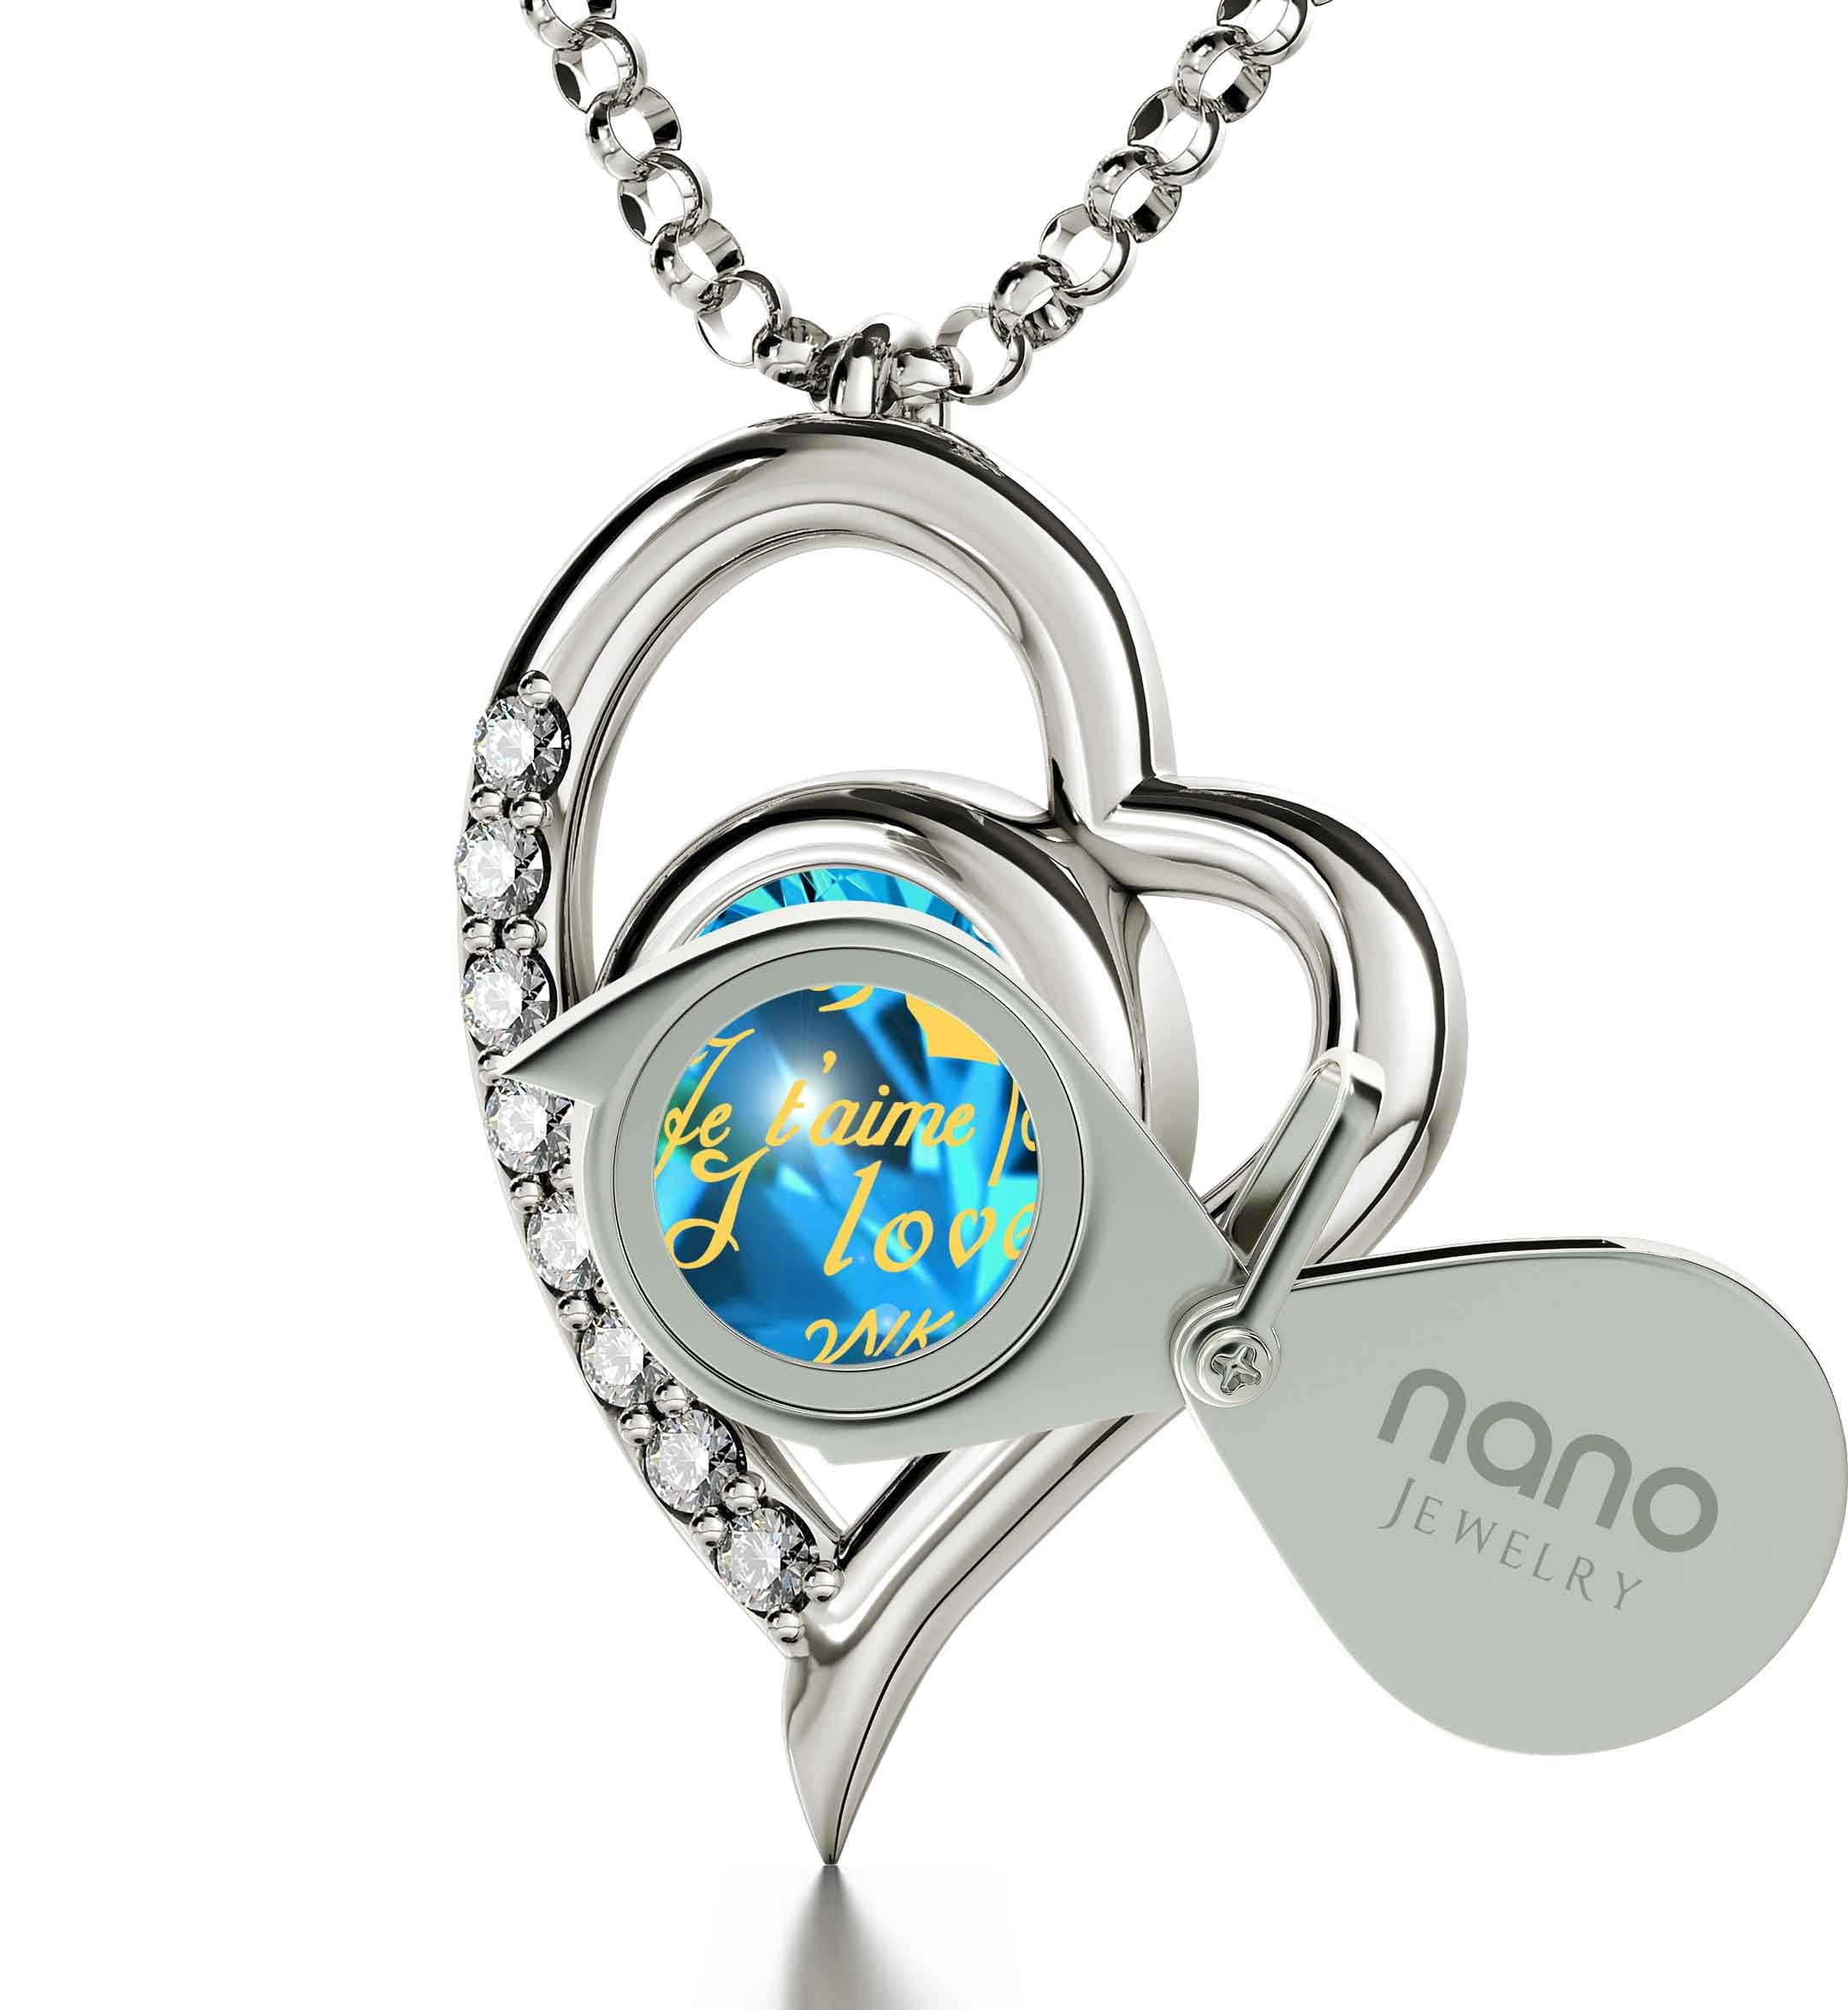 925 Sterling Silver Heart Pendant Necklace I Love You 12 Languages 24k Gold Inscribed Blue Crystal, 18'' by Nano Jewelry (Image #2)